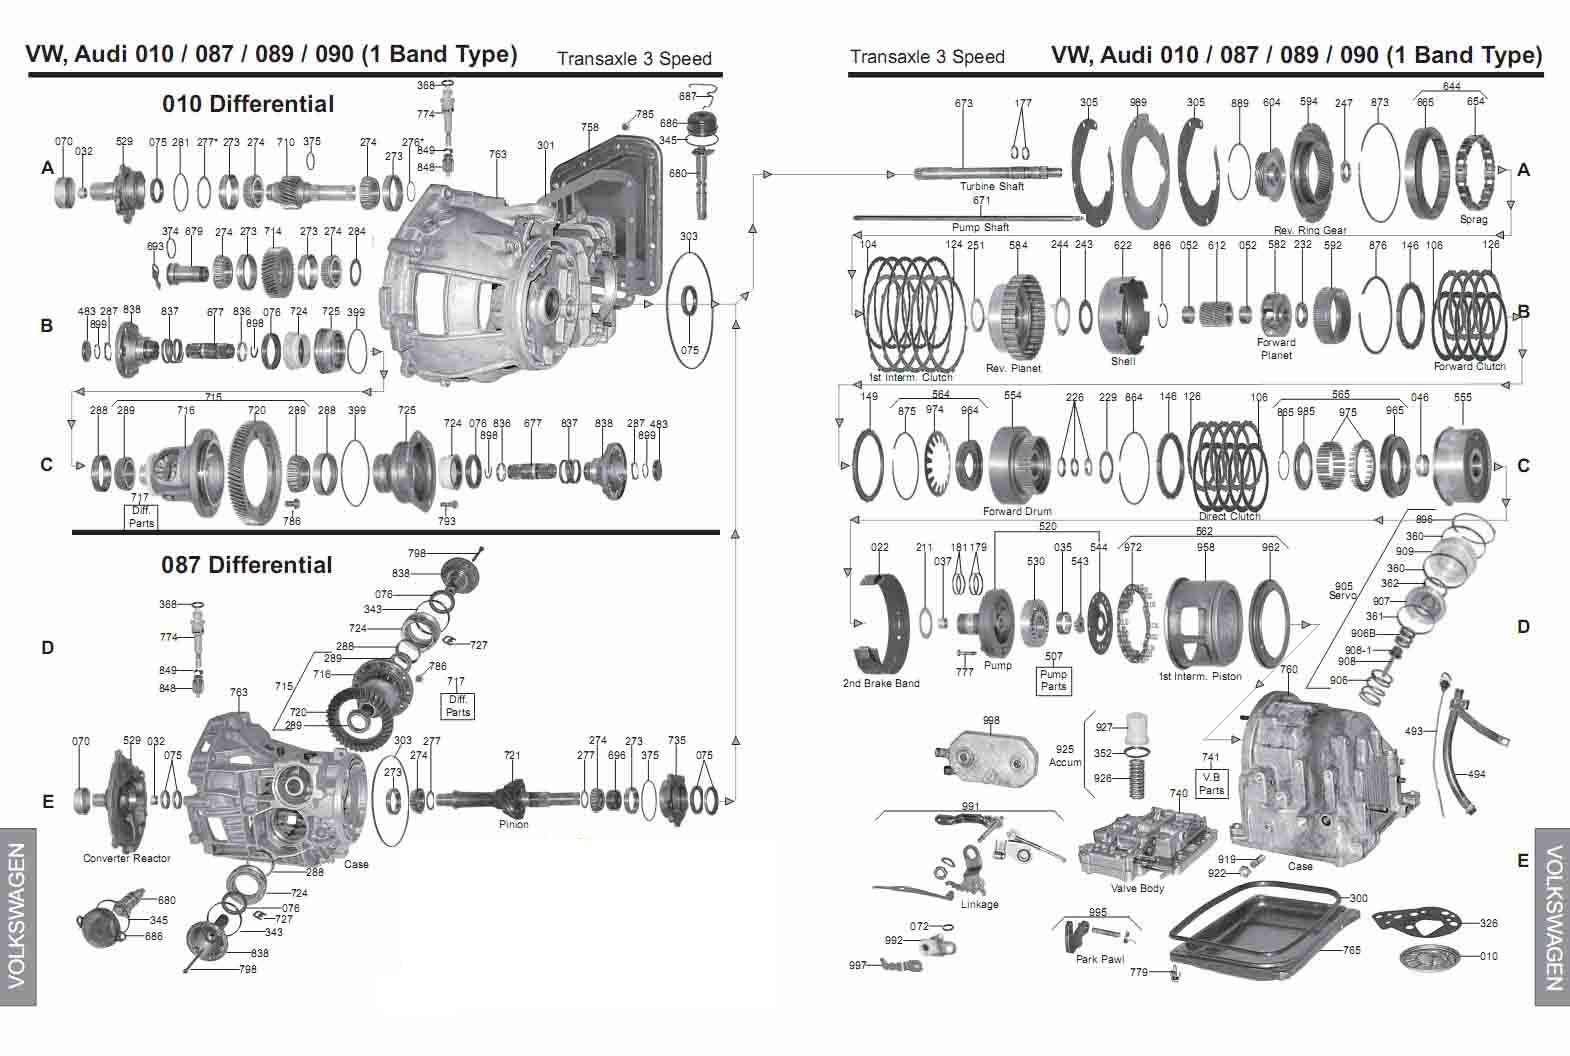 010 Transmission parts, repair guidelines, problems, manuals